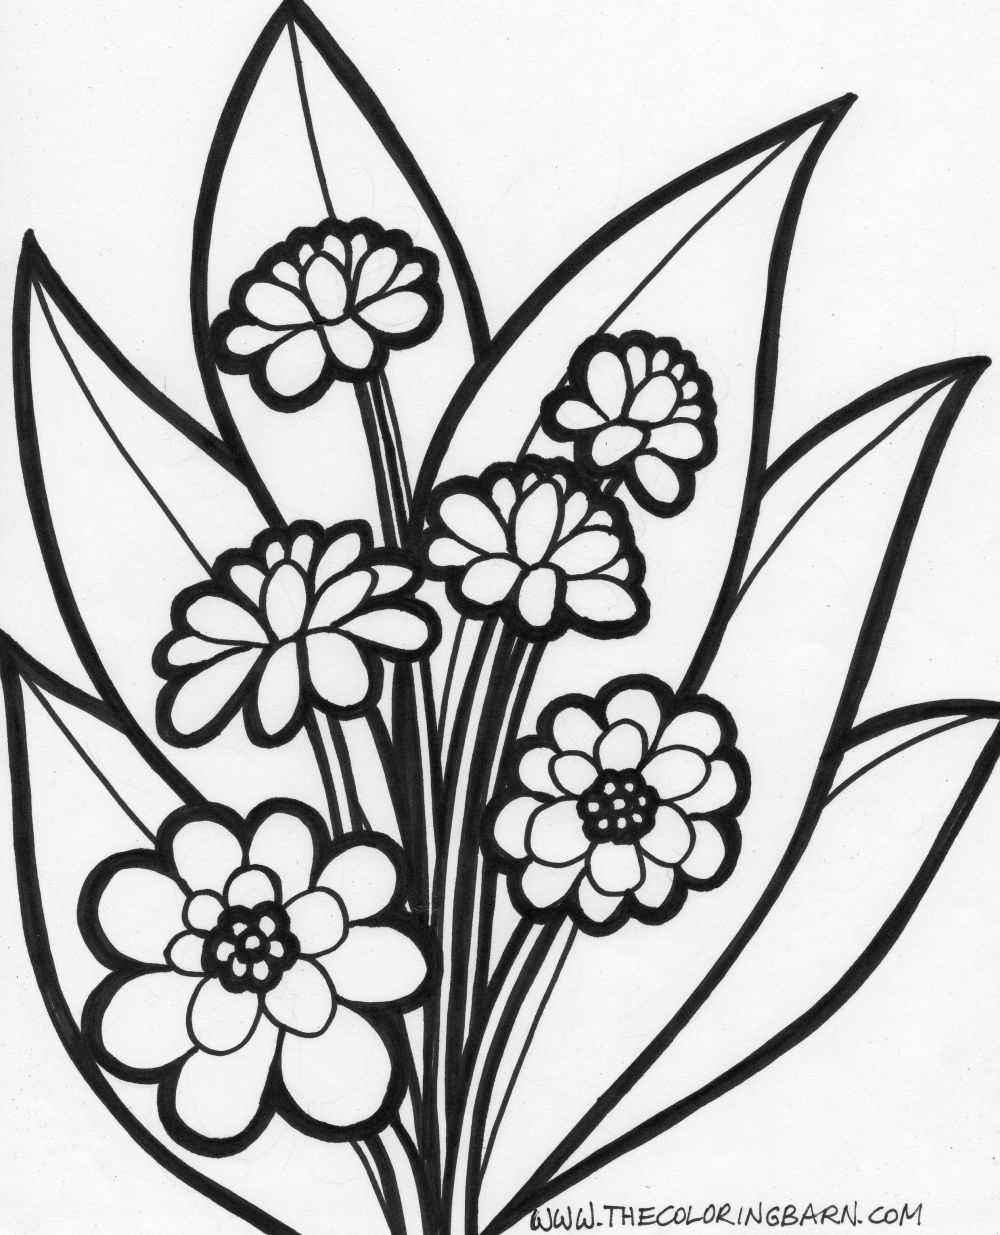 Flowers Coloring Pages Free Printable Printable Coloring Pages Free Download Best Printable Coloring